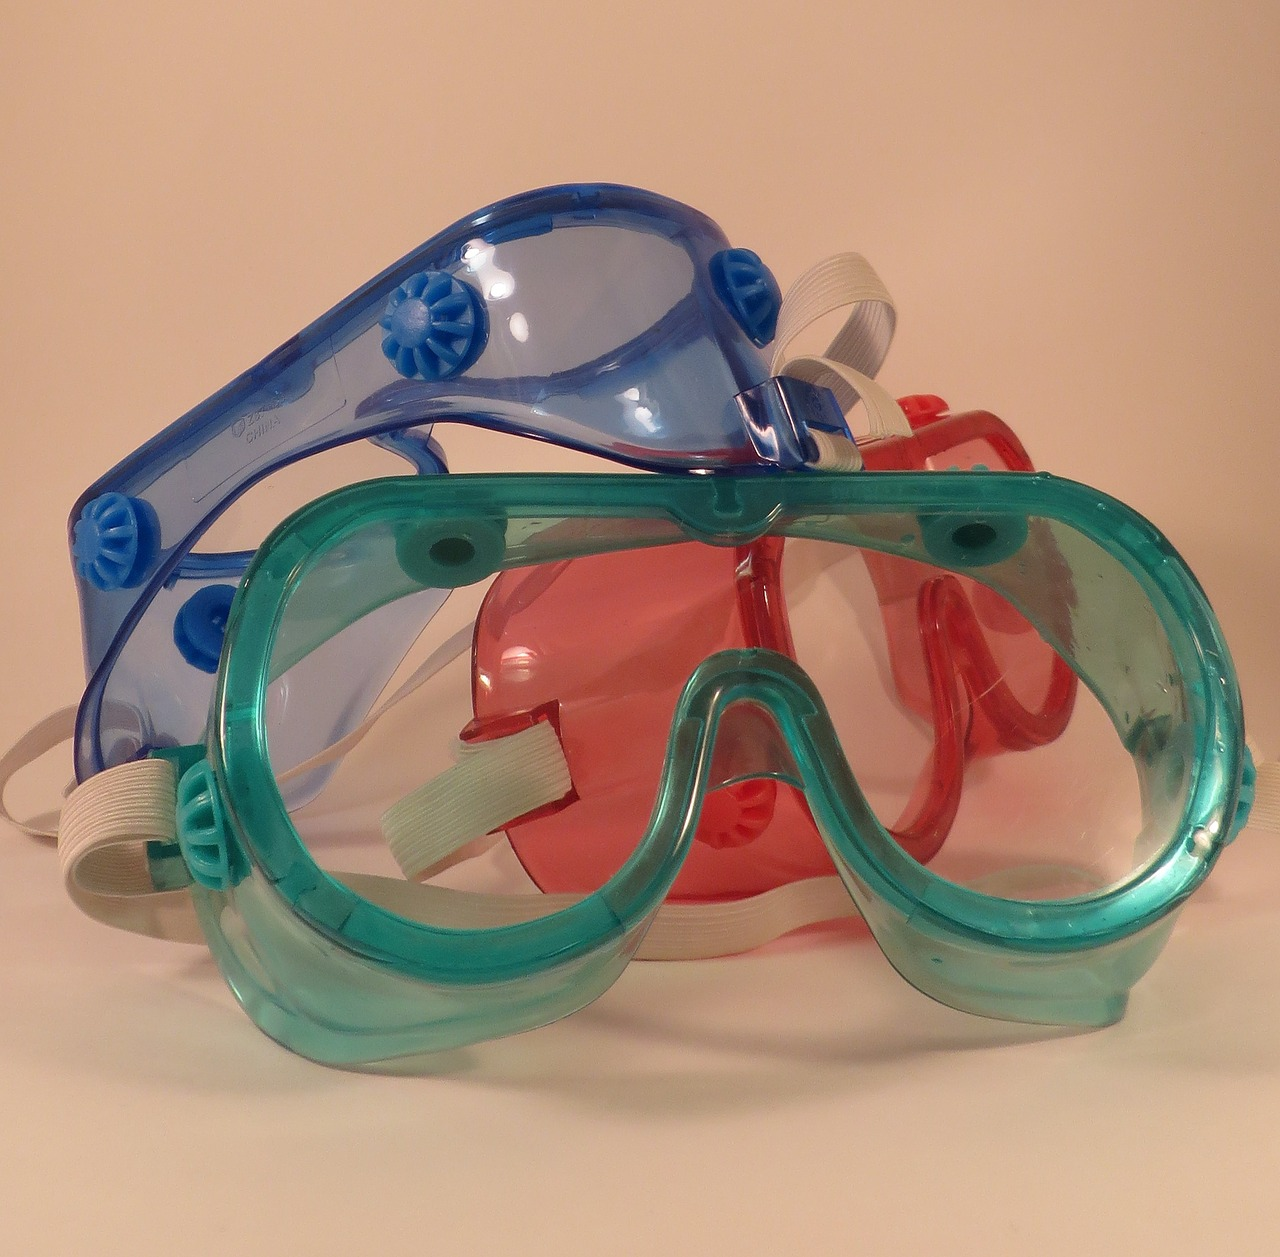 Safety goggles with different colors